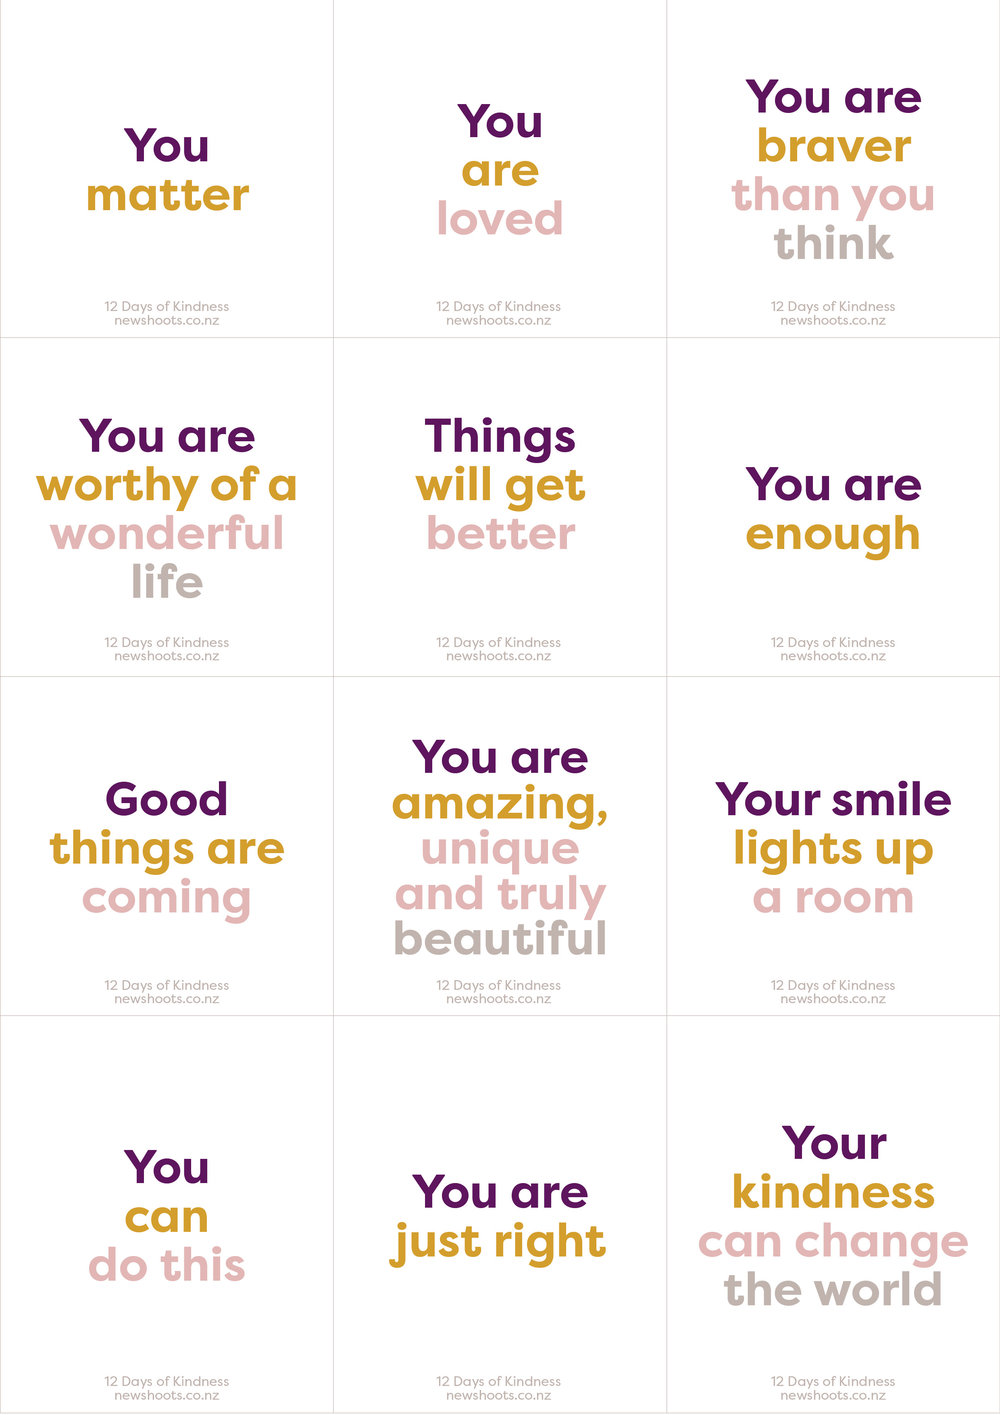 12 days of kindness notes.jpg